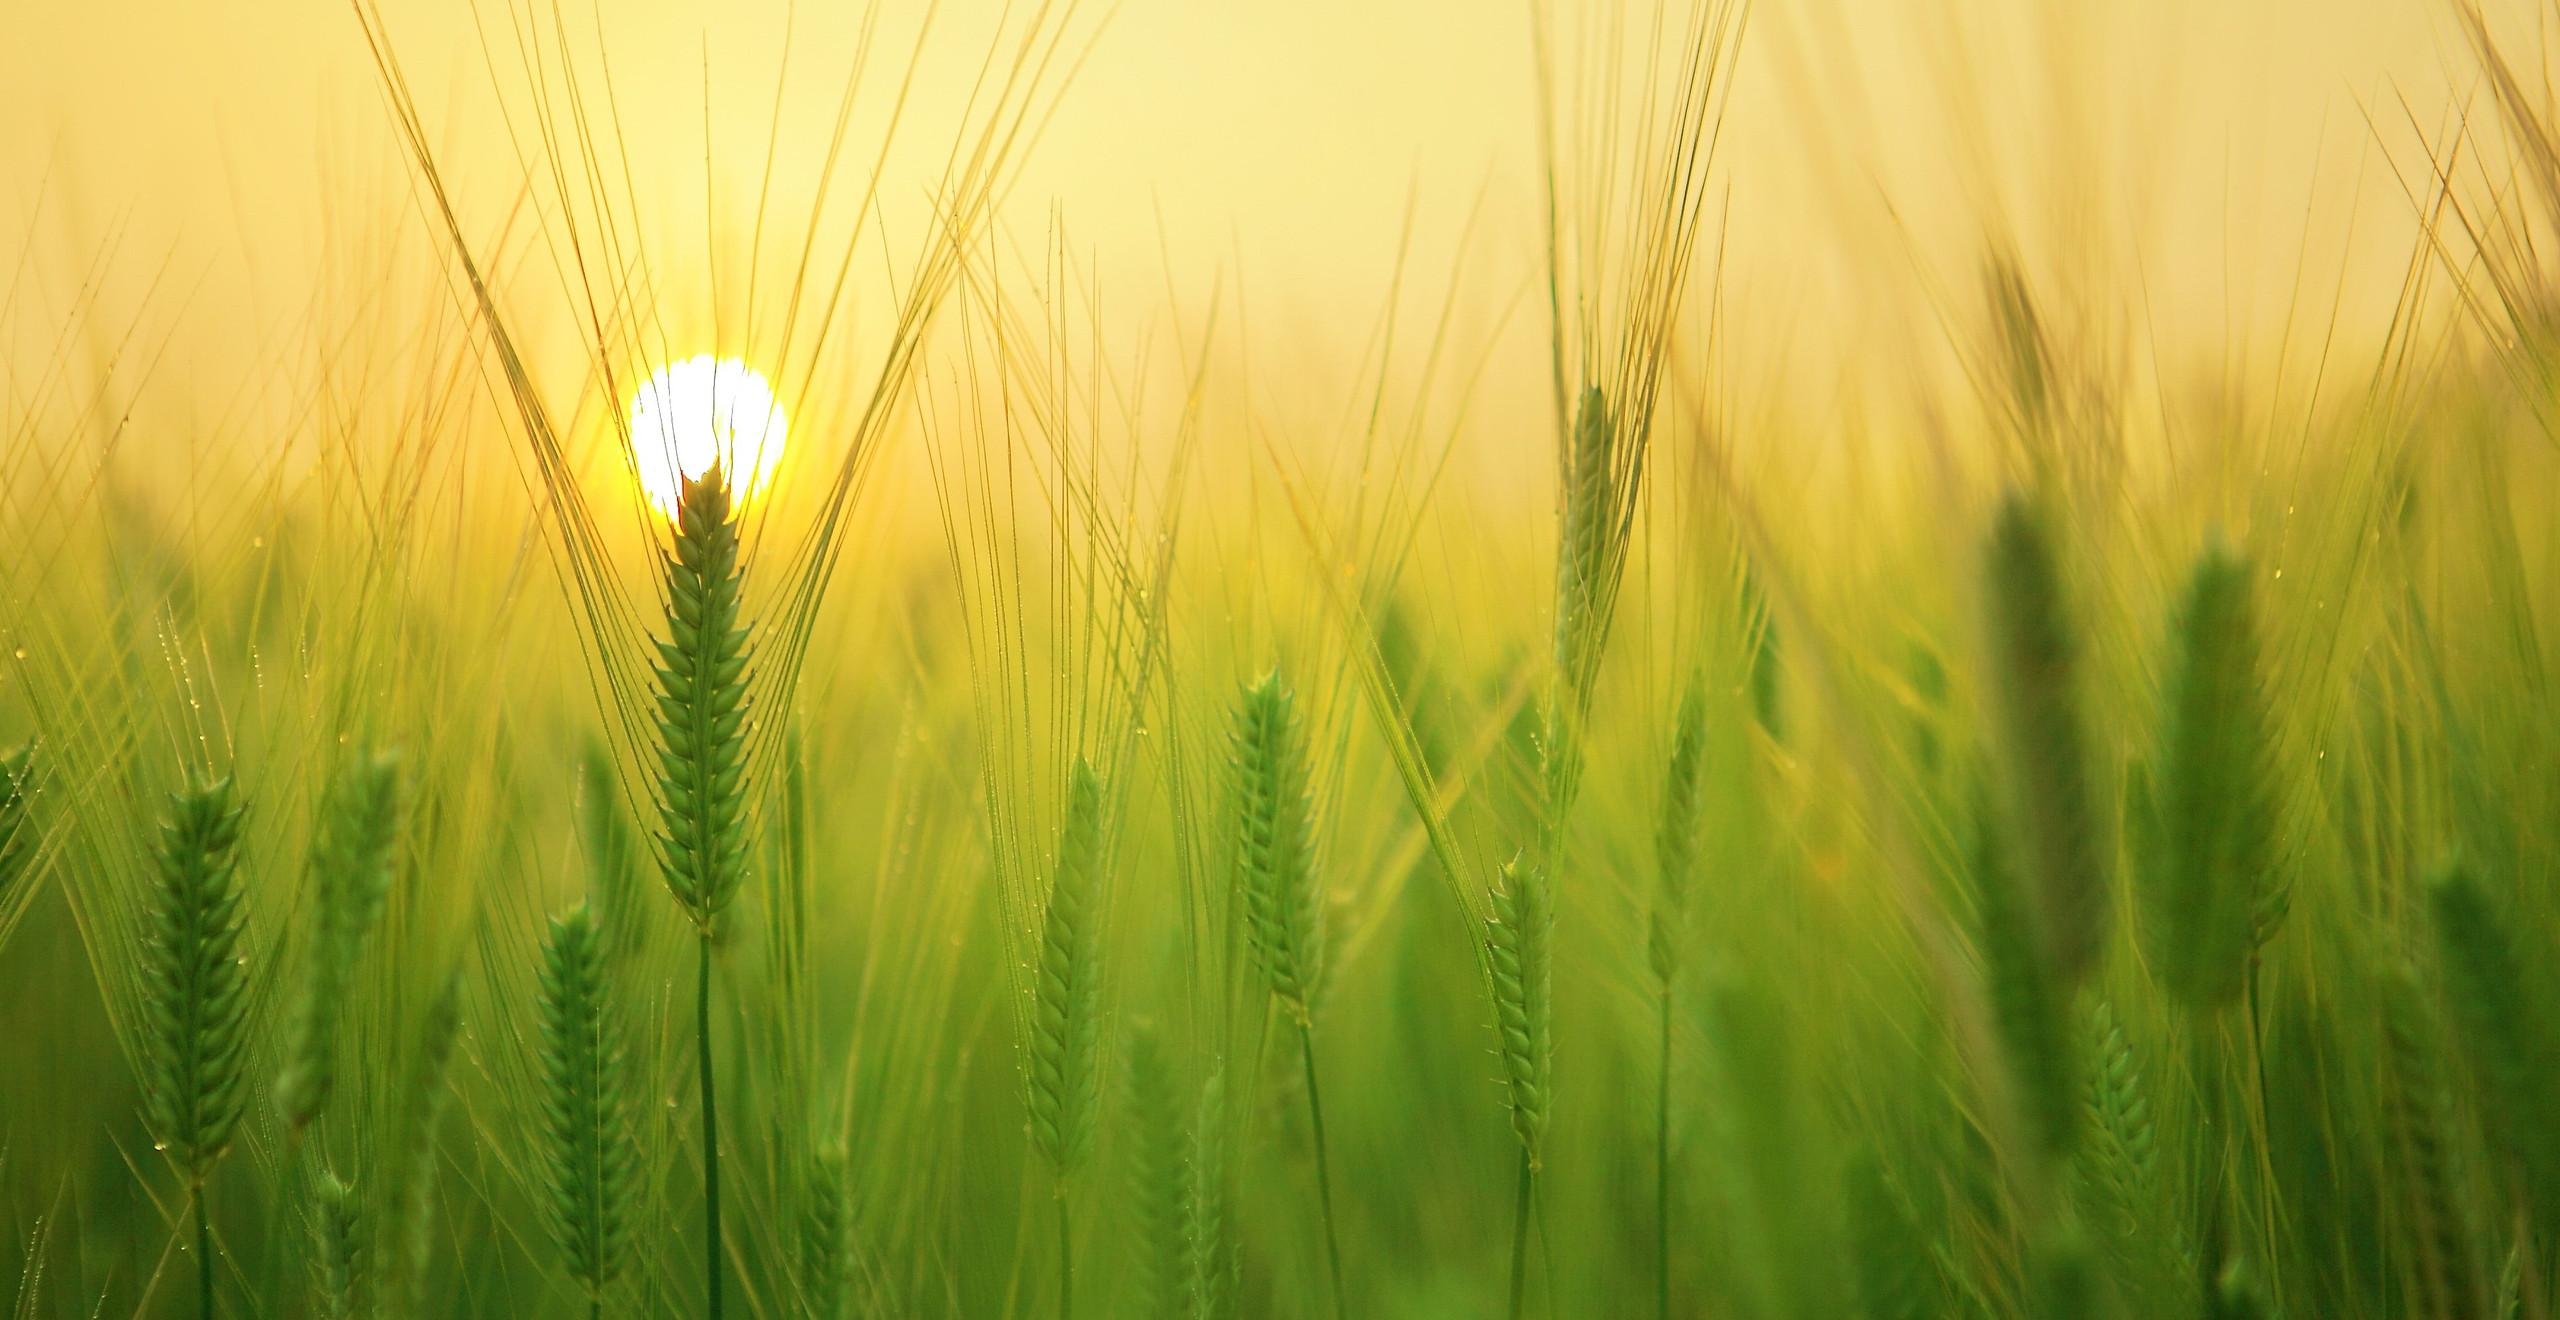 Wheat germ oil is rich source of vitamin E